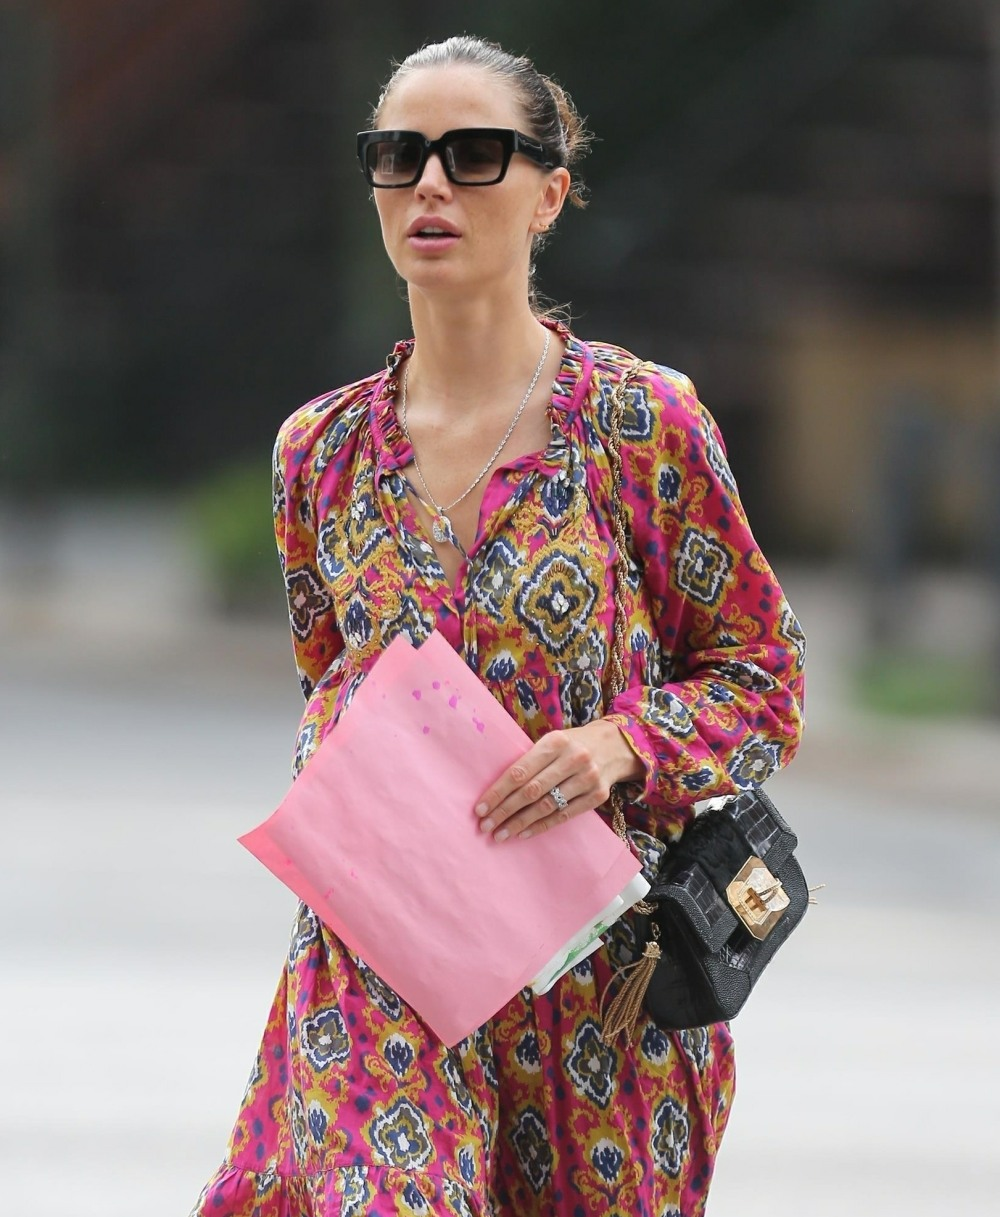 Harvey Weinstein's wife Georgina Chapman is seen out in NYC **FILE PHOTOS**